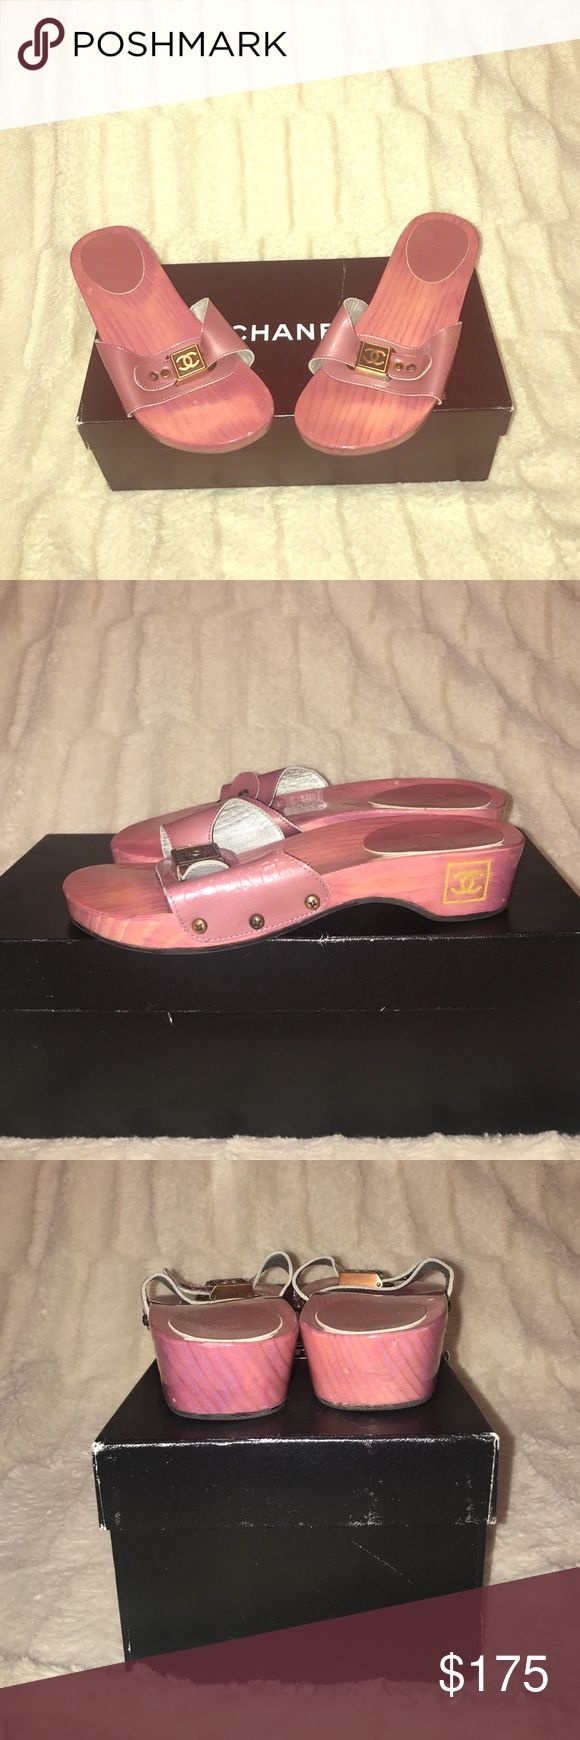 NEW CHANEL SHOES PRICE FIRM Brand New Chanel sandals. Pink/rose pink color. Strap is patent leather. Heel height is about an inch and a half. Patent leather strap also has CHANEL imprinted on it. All around fun shoe for the summer 100% Authentic!! CHANEL Shoes Sandals